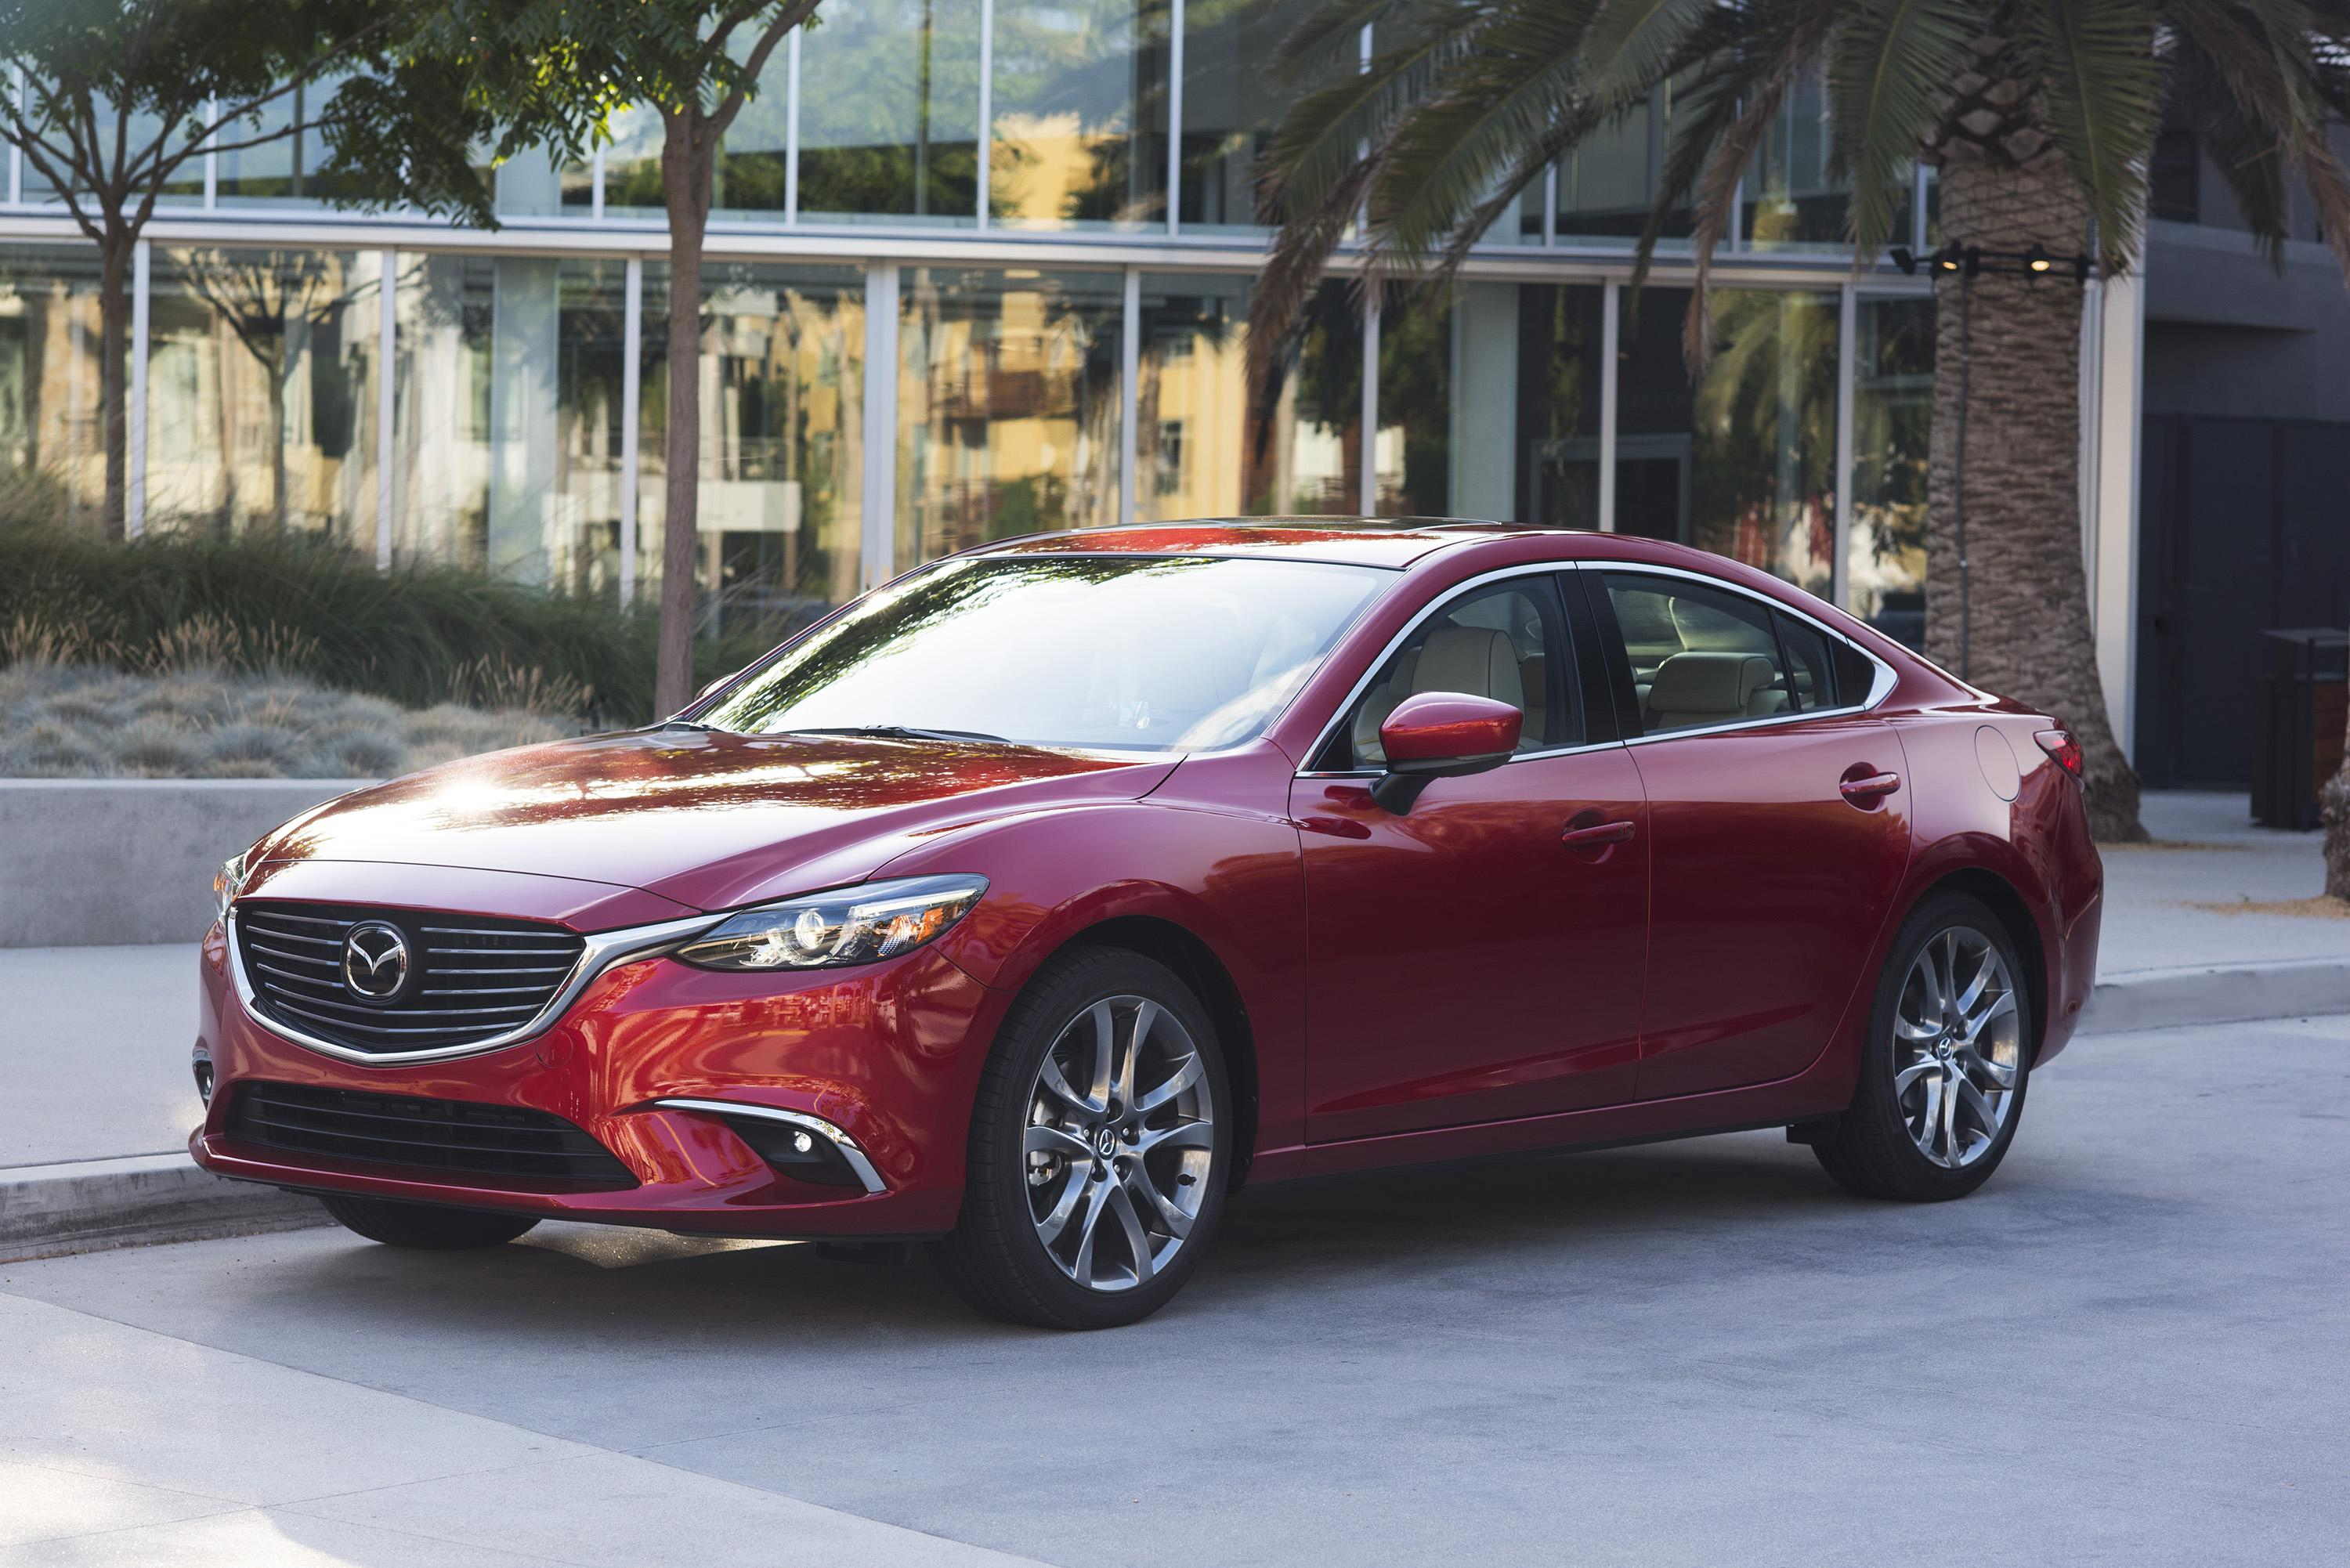 2017 Mazda3 Mazda6 fine tuned to deliver smoother drive handling